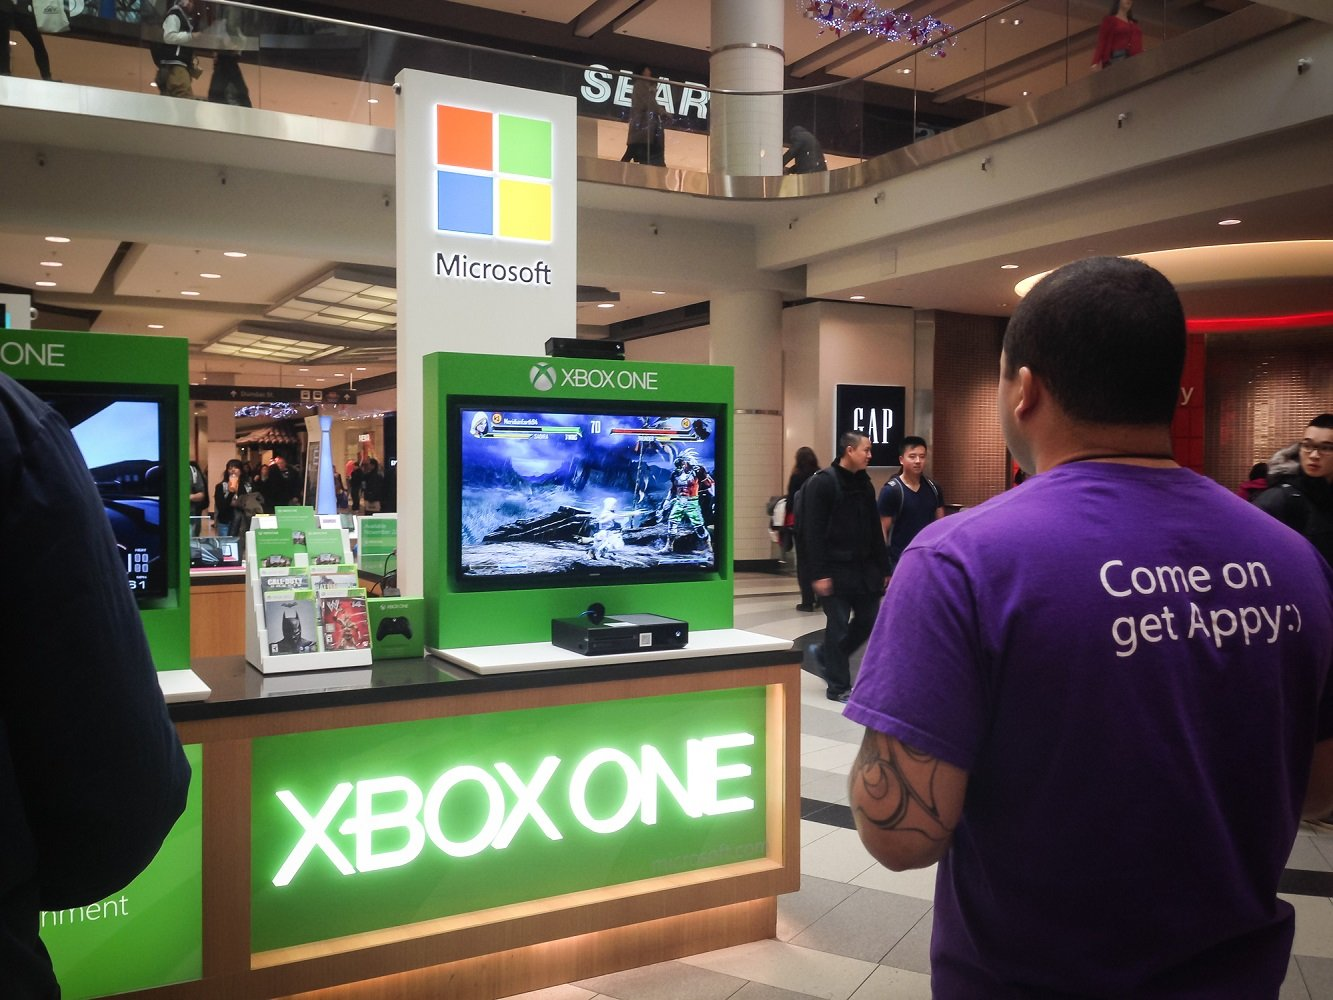 TORONTO - NOVEMBER 15: Microsoft staff demonstrates the Xbox One at the mall in Toronto, Canada on November 15, 2013.